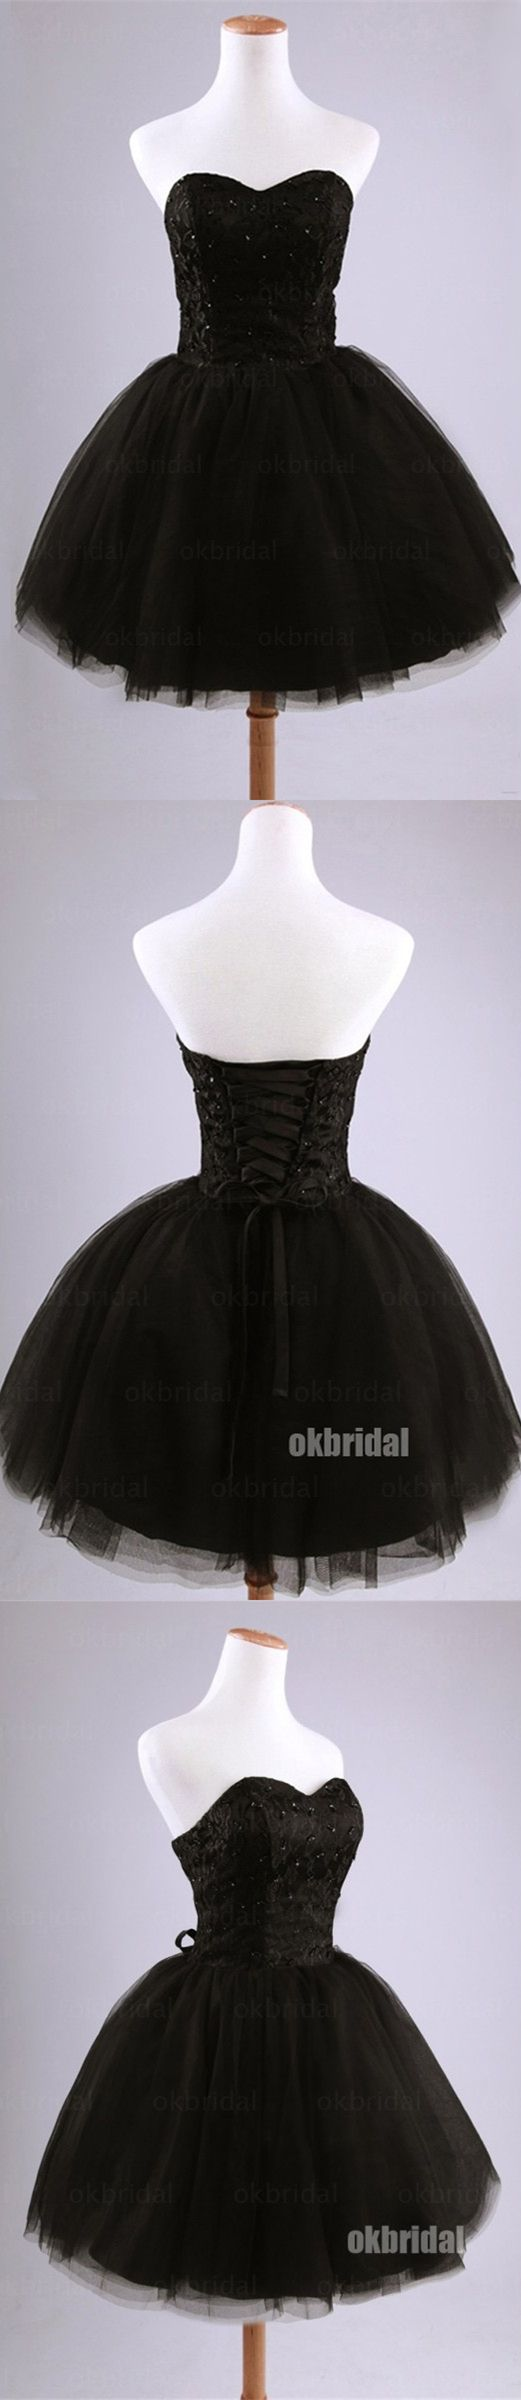 Black Homecoming dresses, junior homecoming dress, tulle homecoming dress, cheap homecoming dress, dresses for homecoming, 17608